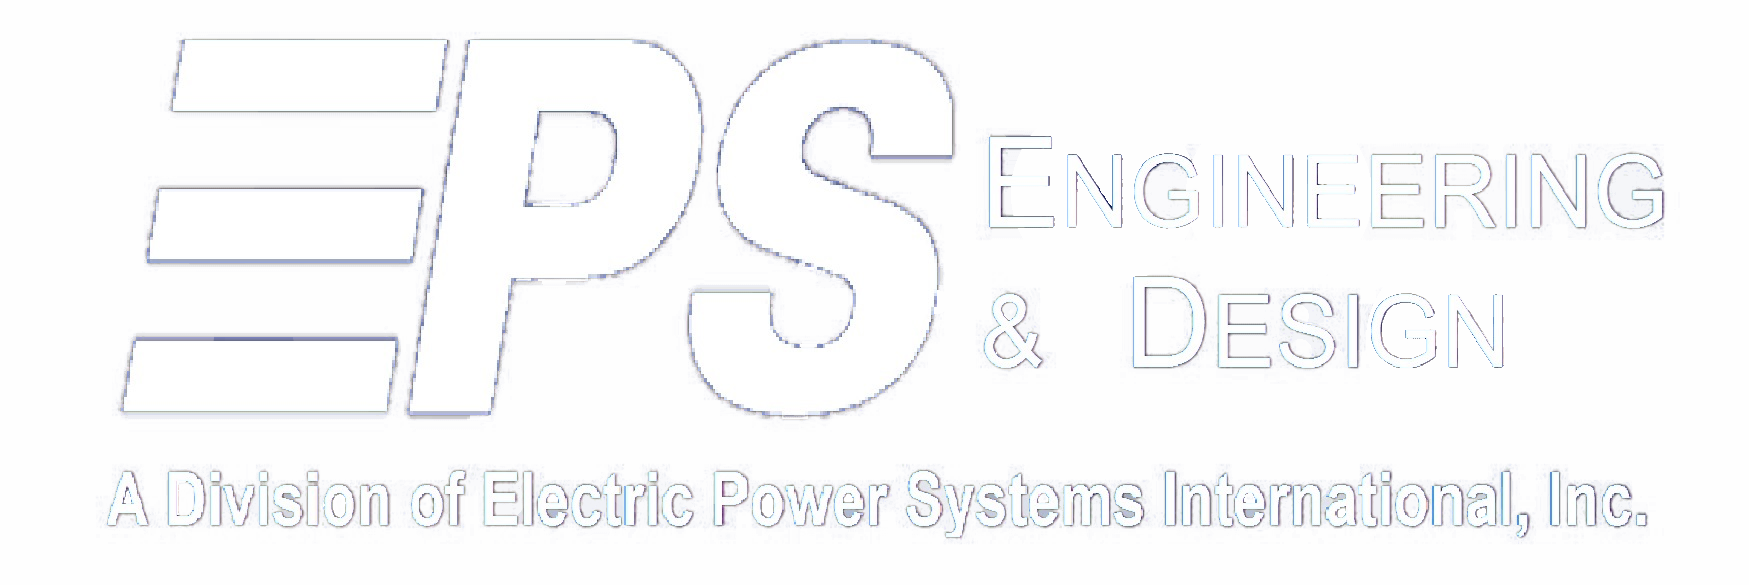 EPS Engineering and Design